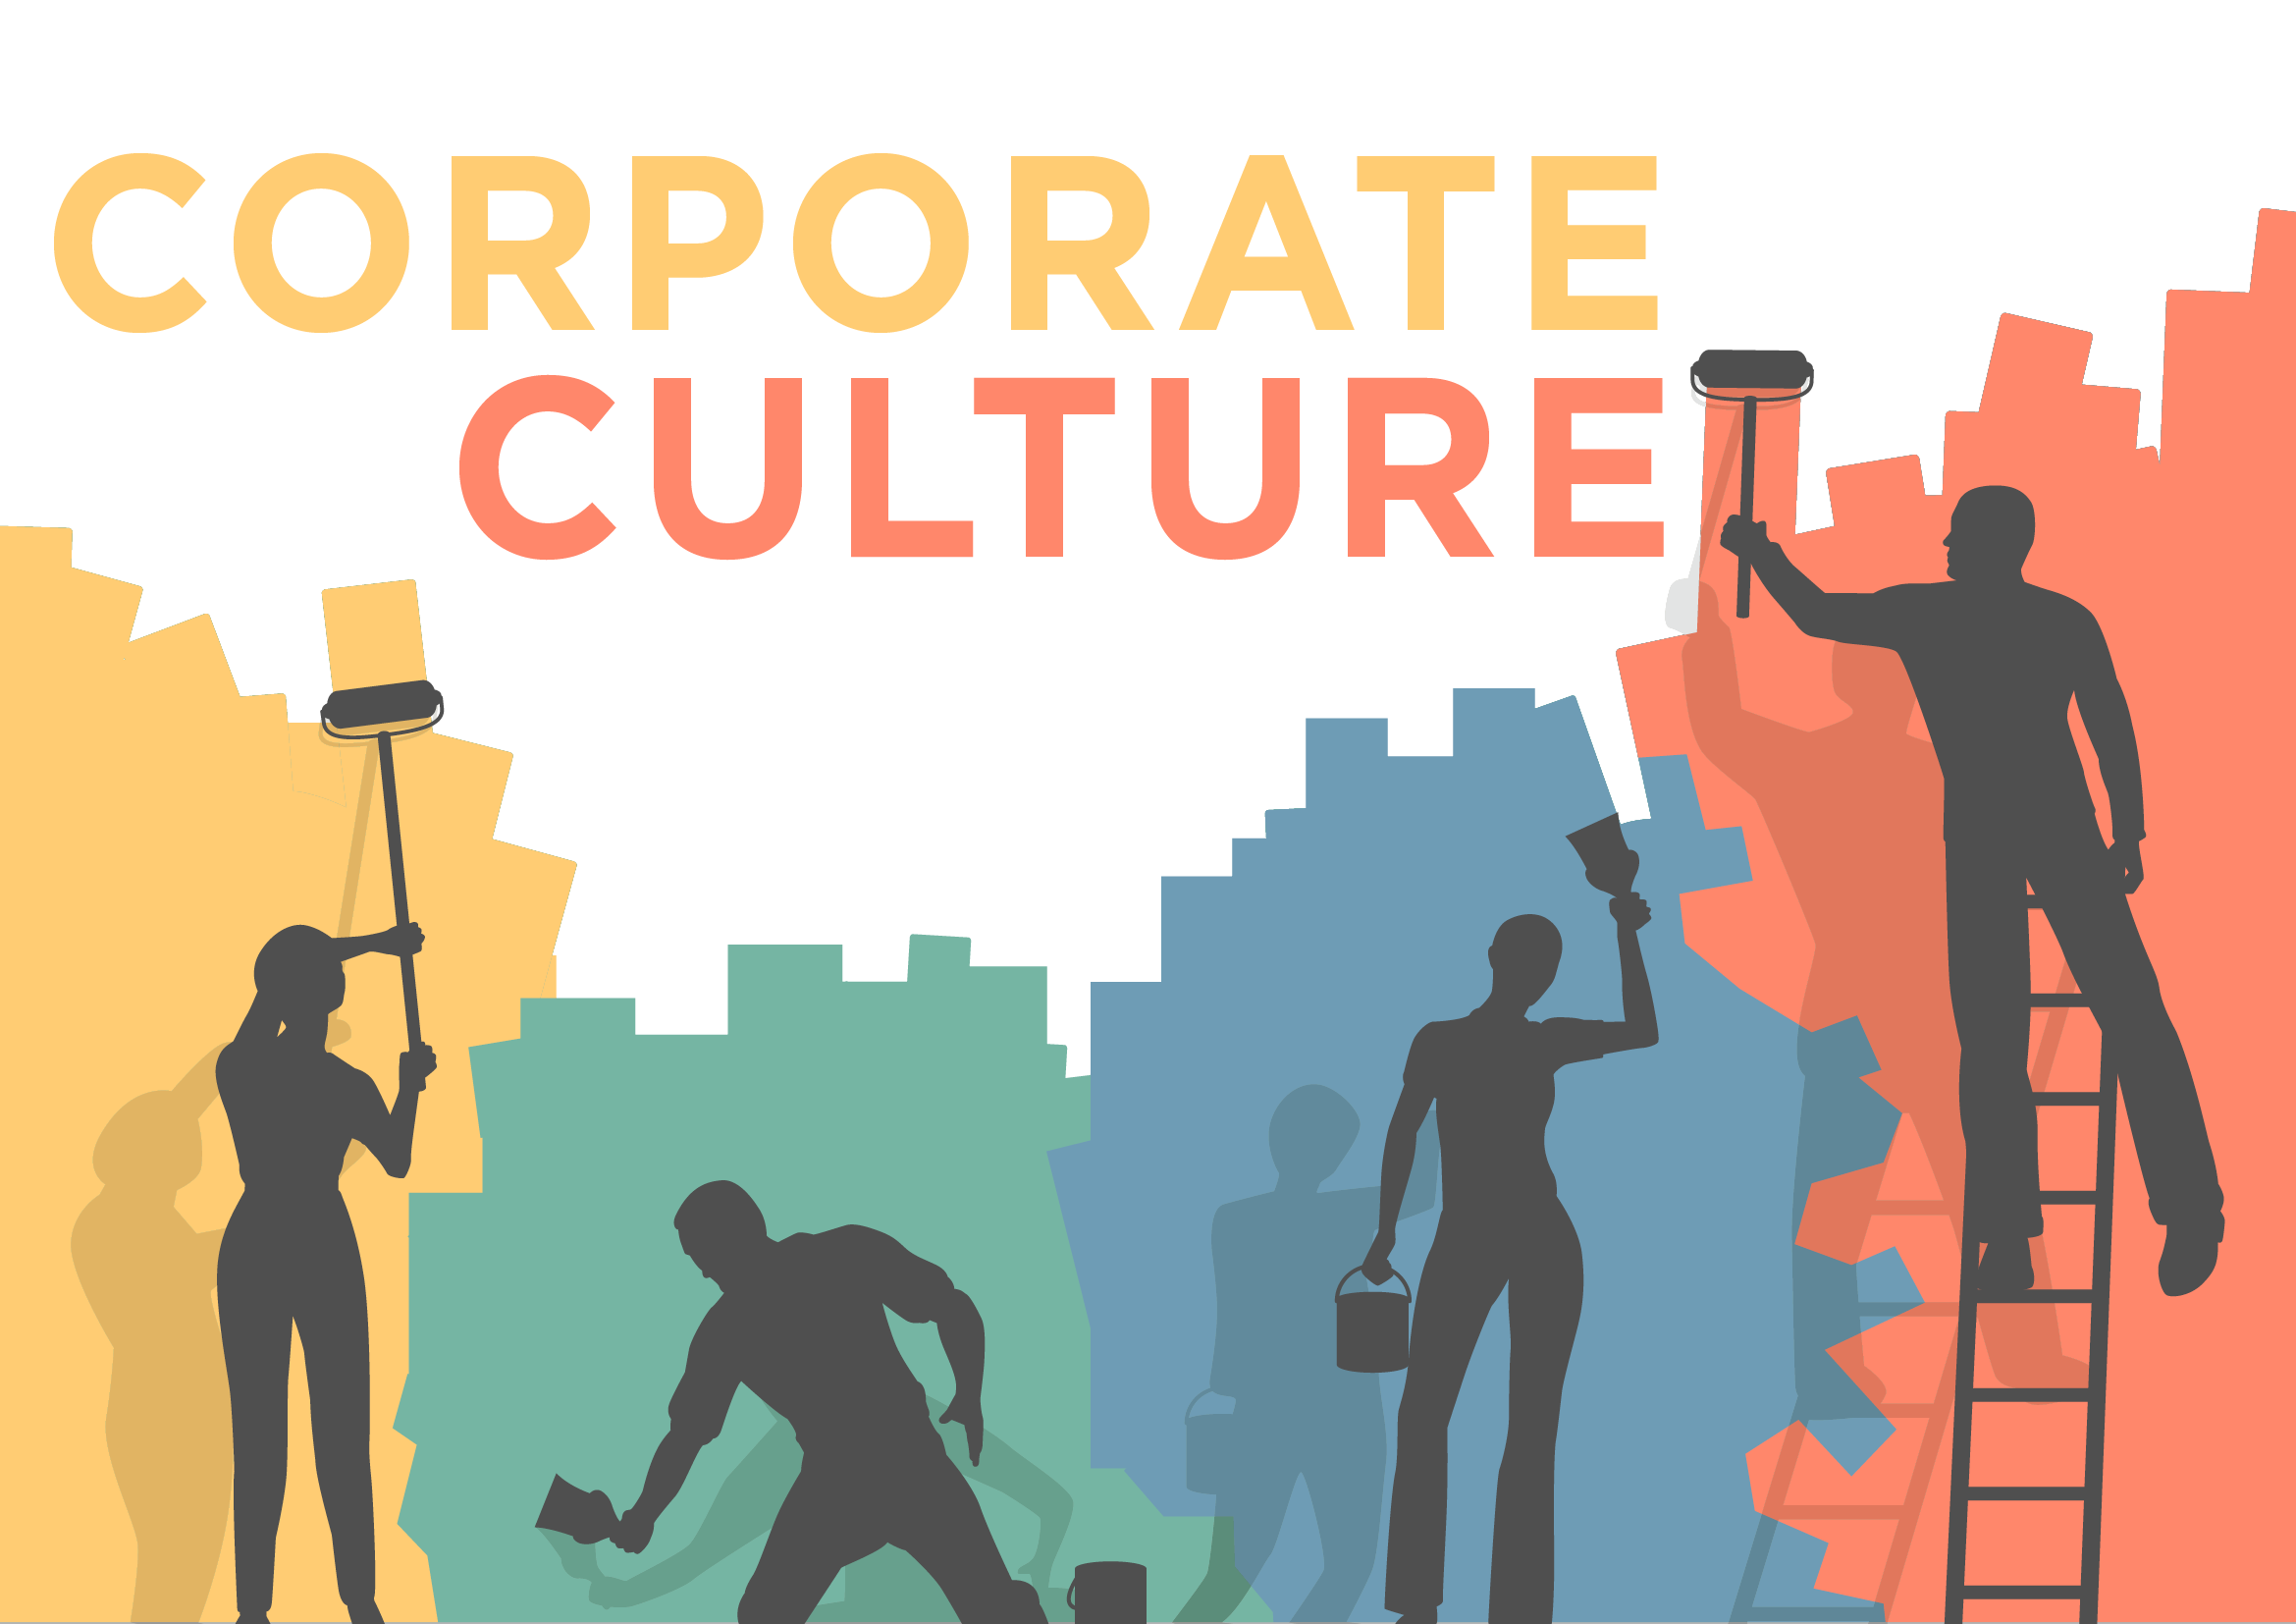 Corporate Workplace Culture As It REALLY Is